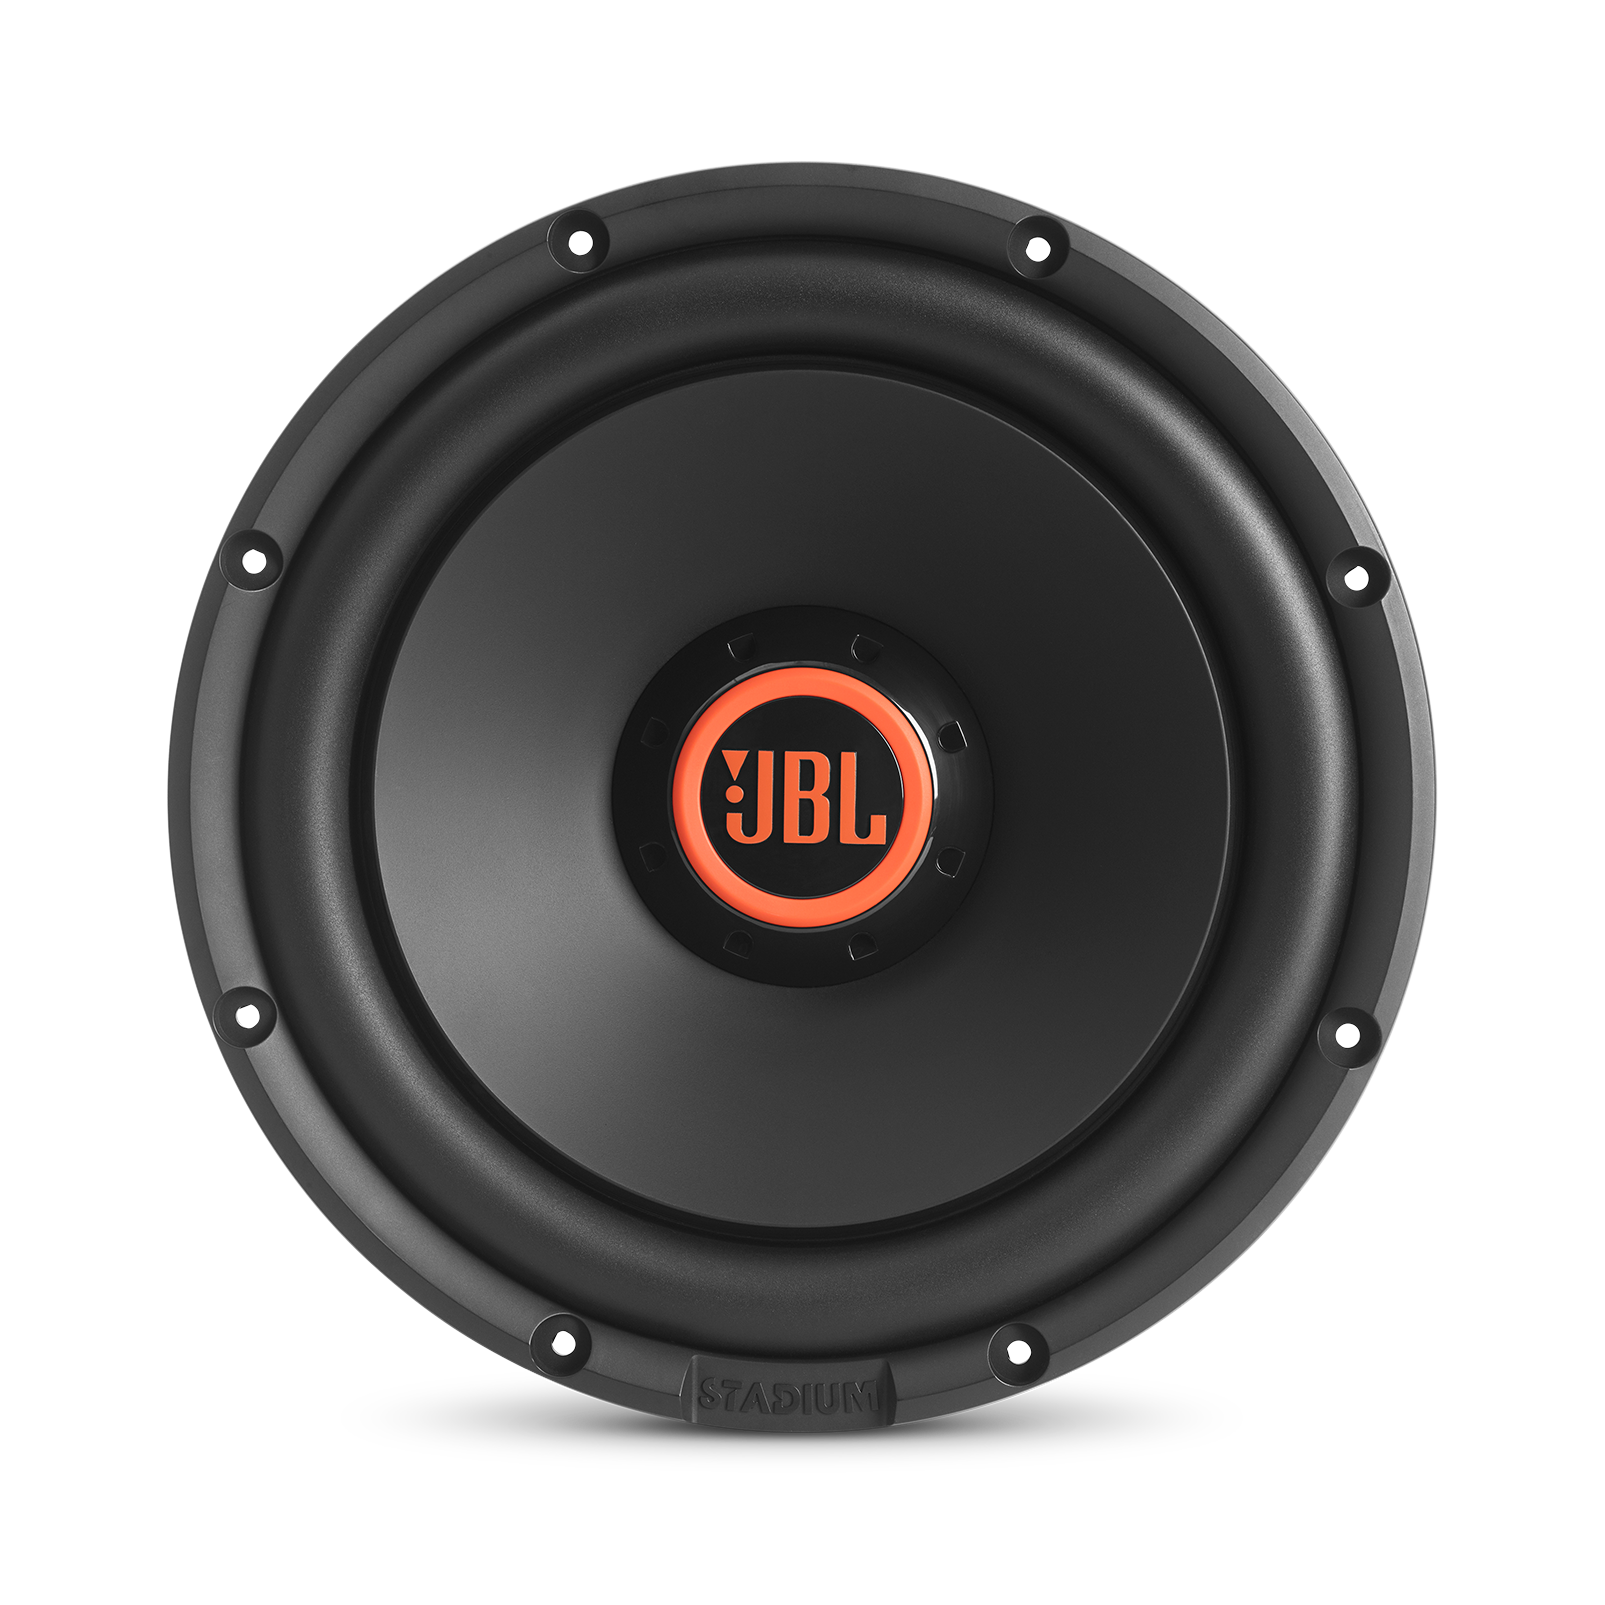 "JBL Stadium 1224 - Black - 12"" (300mm) high-performance car audio subwoofers - Front"